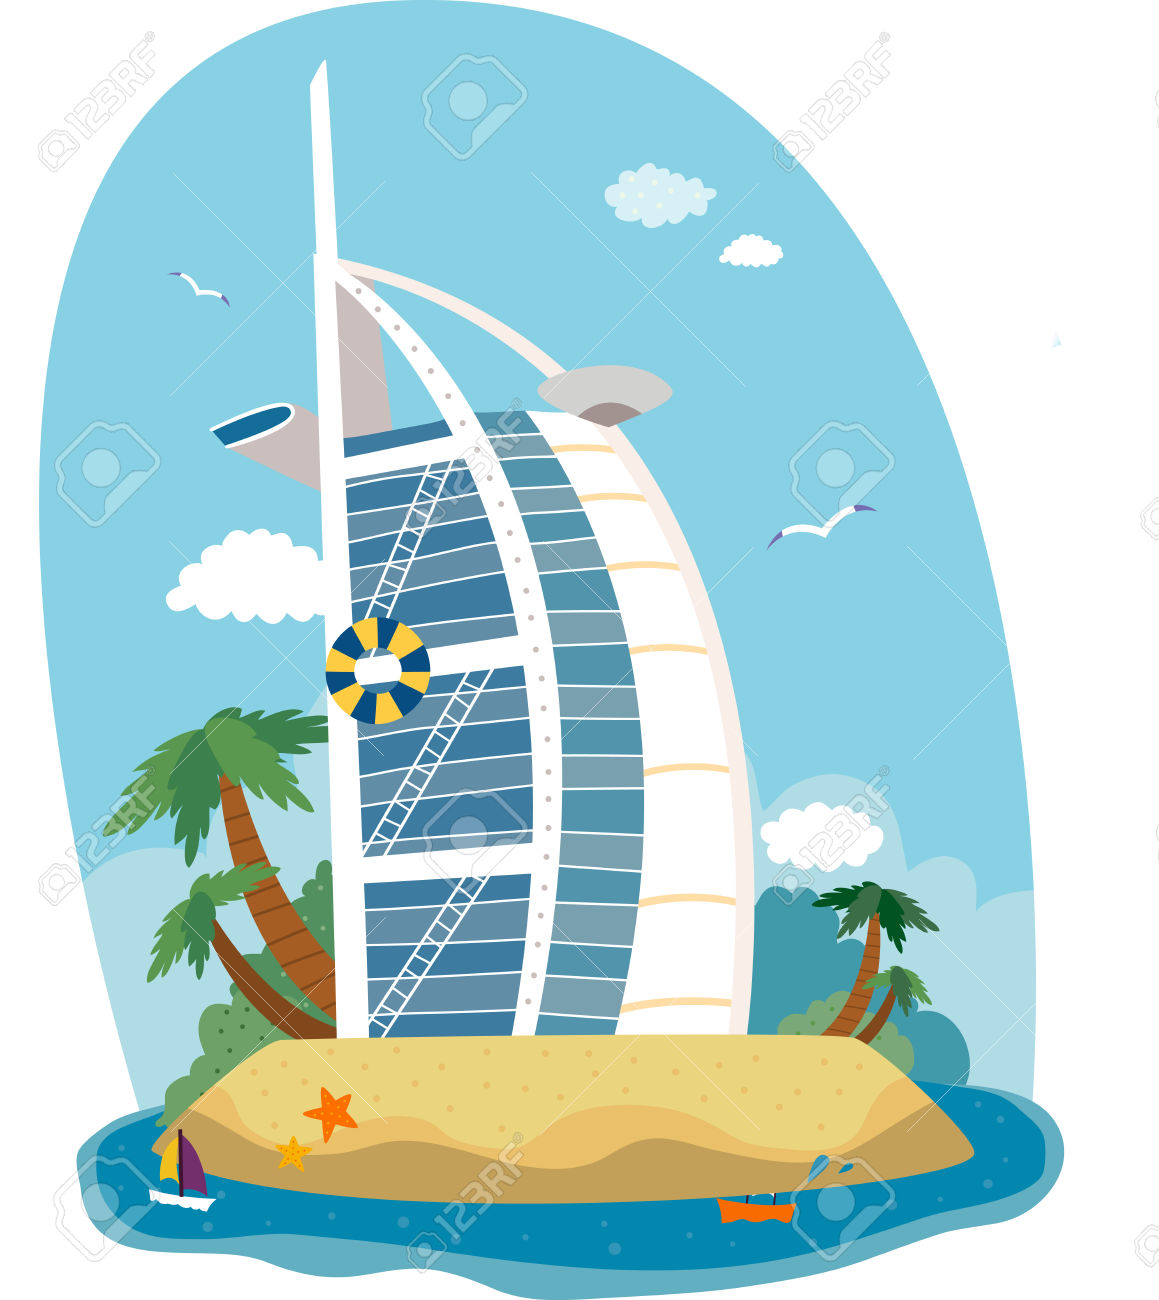 Burj al arab hd clipart.